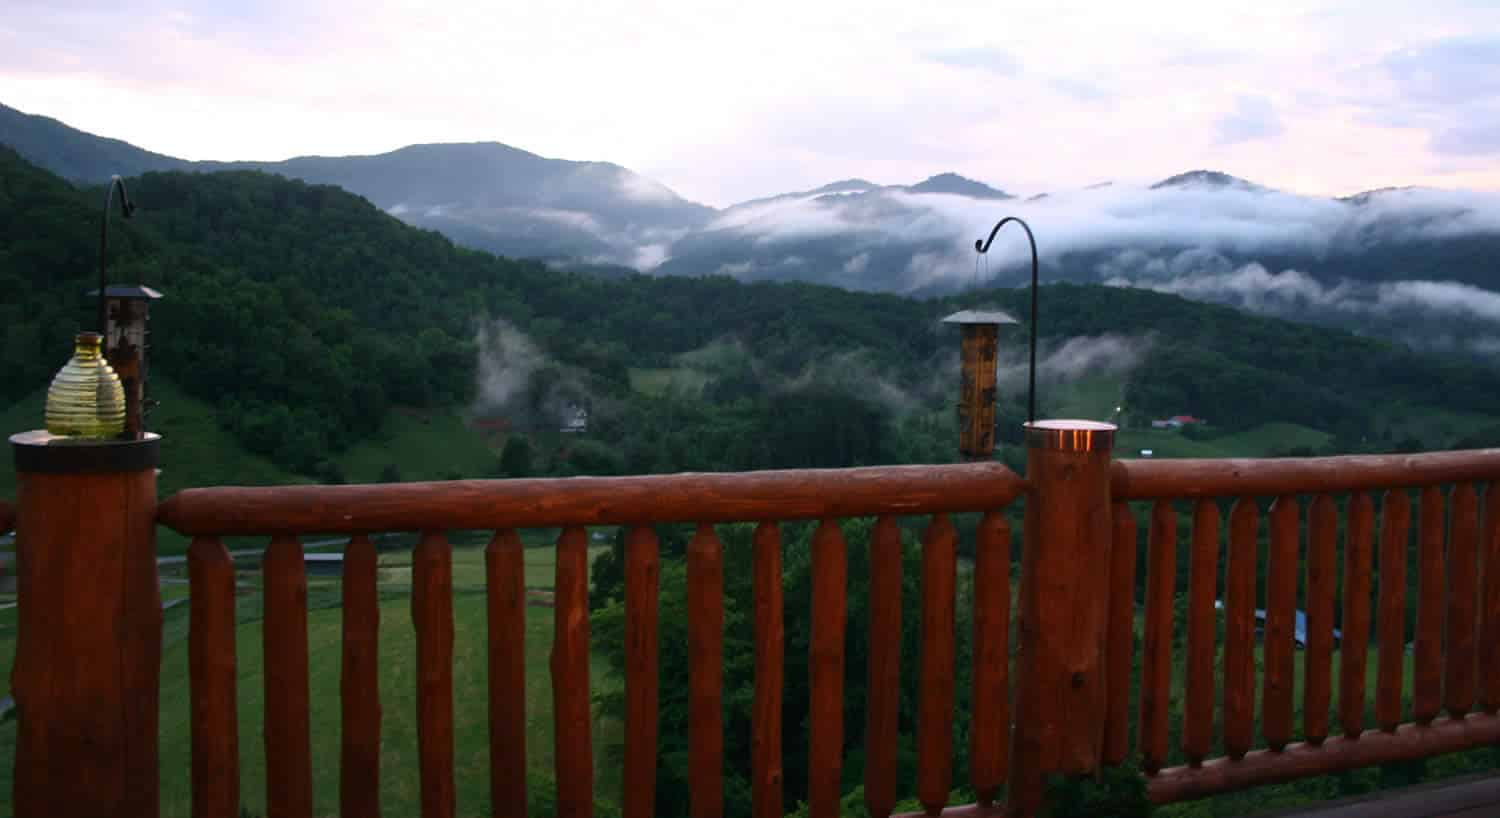 View of misty mountains and a green valley from a wooden deck with bird feeders.